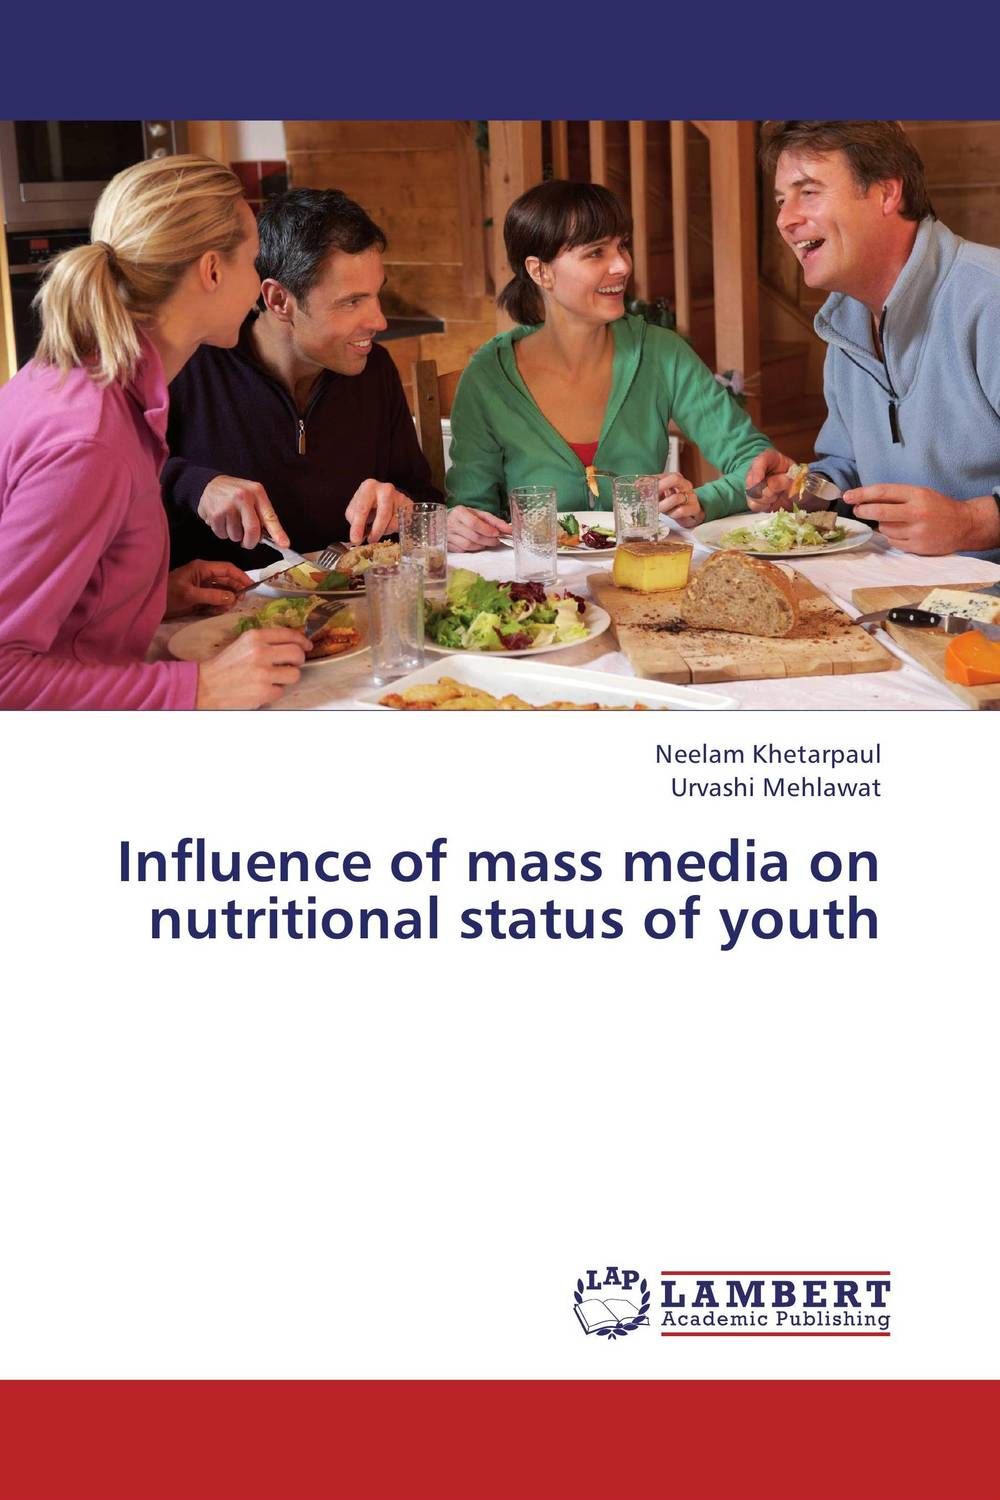 Influence of mass media on nutritional status of youth nutritional status